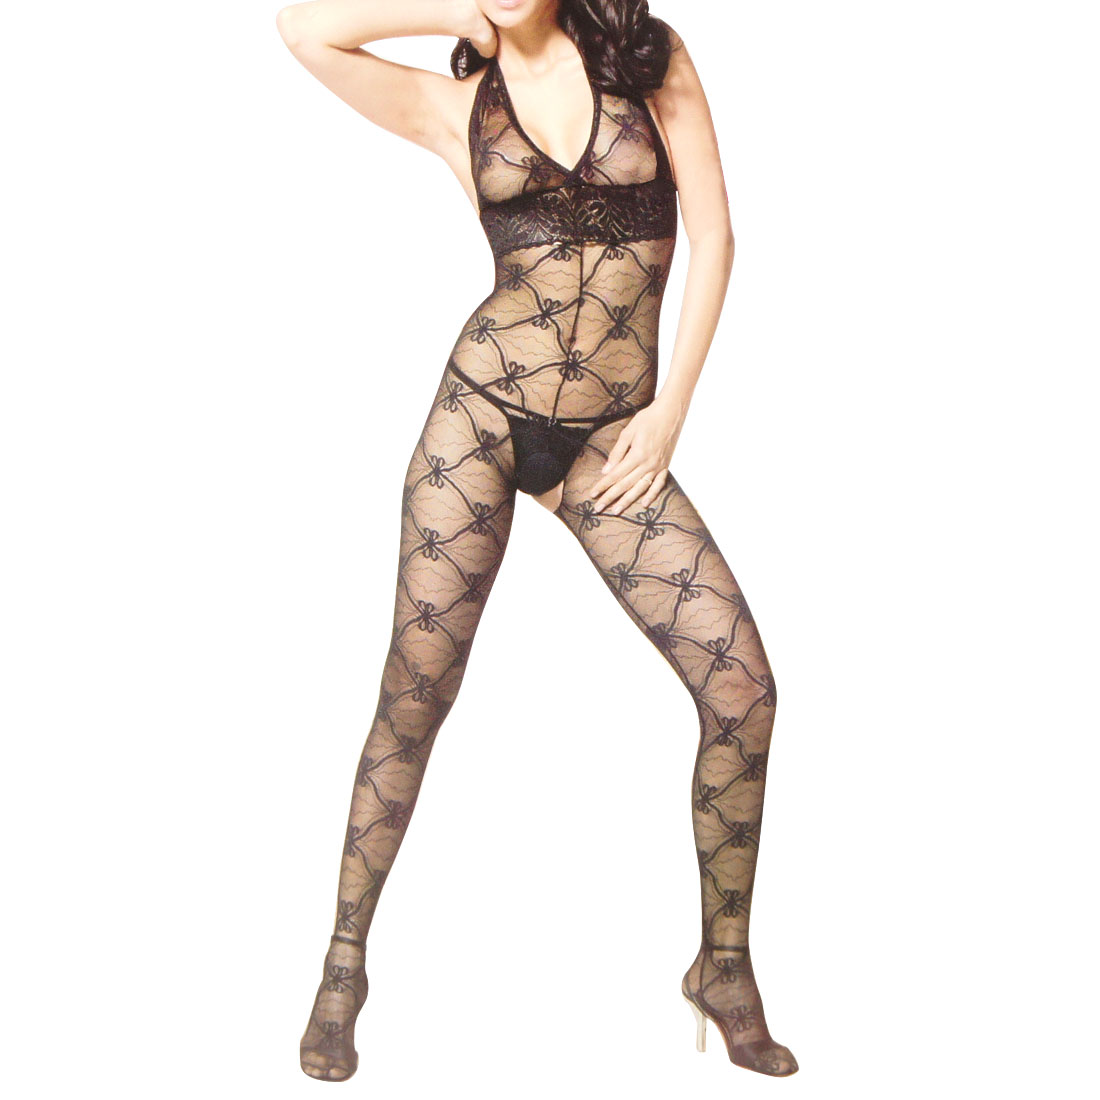 Ladies Halter Neck Black Sexy Lingerie Mesh Body Stockings Costume XS